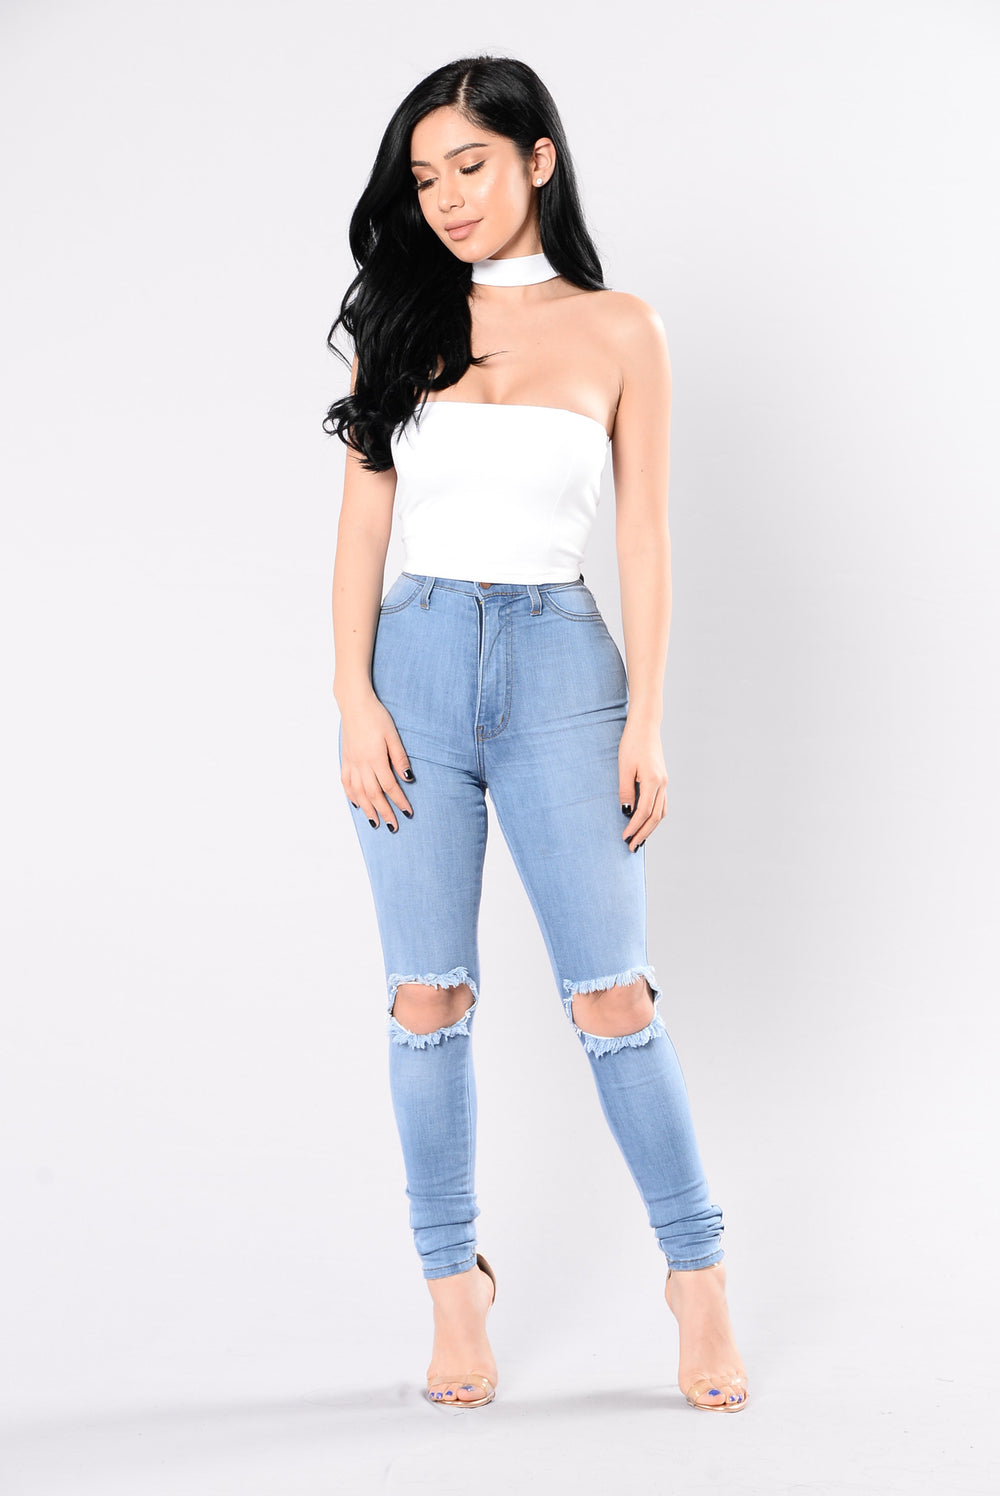 Justify My Sass Top - White